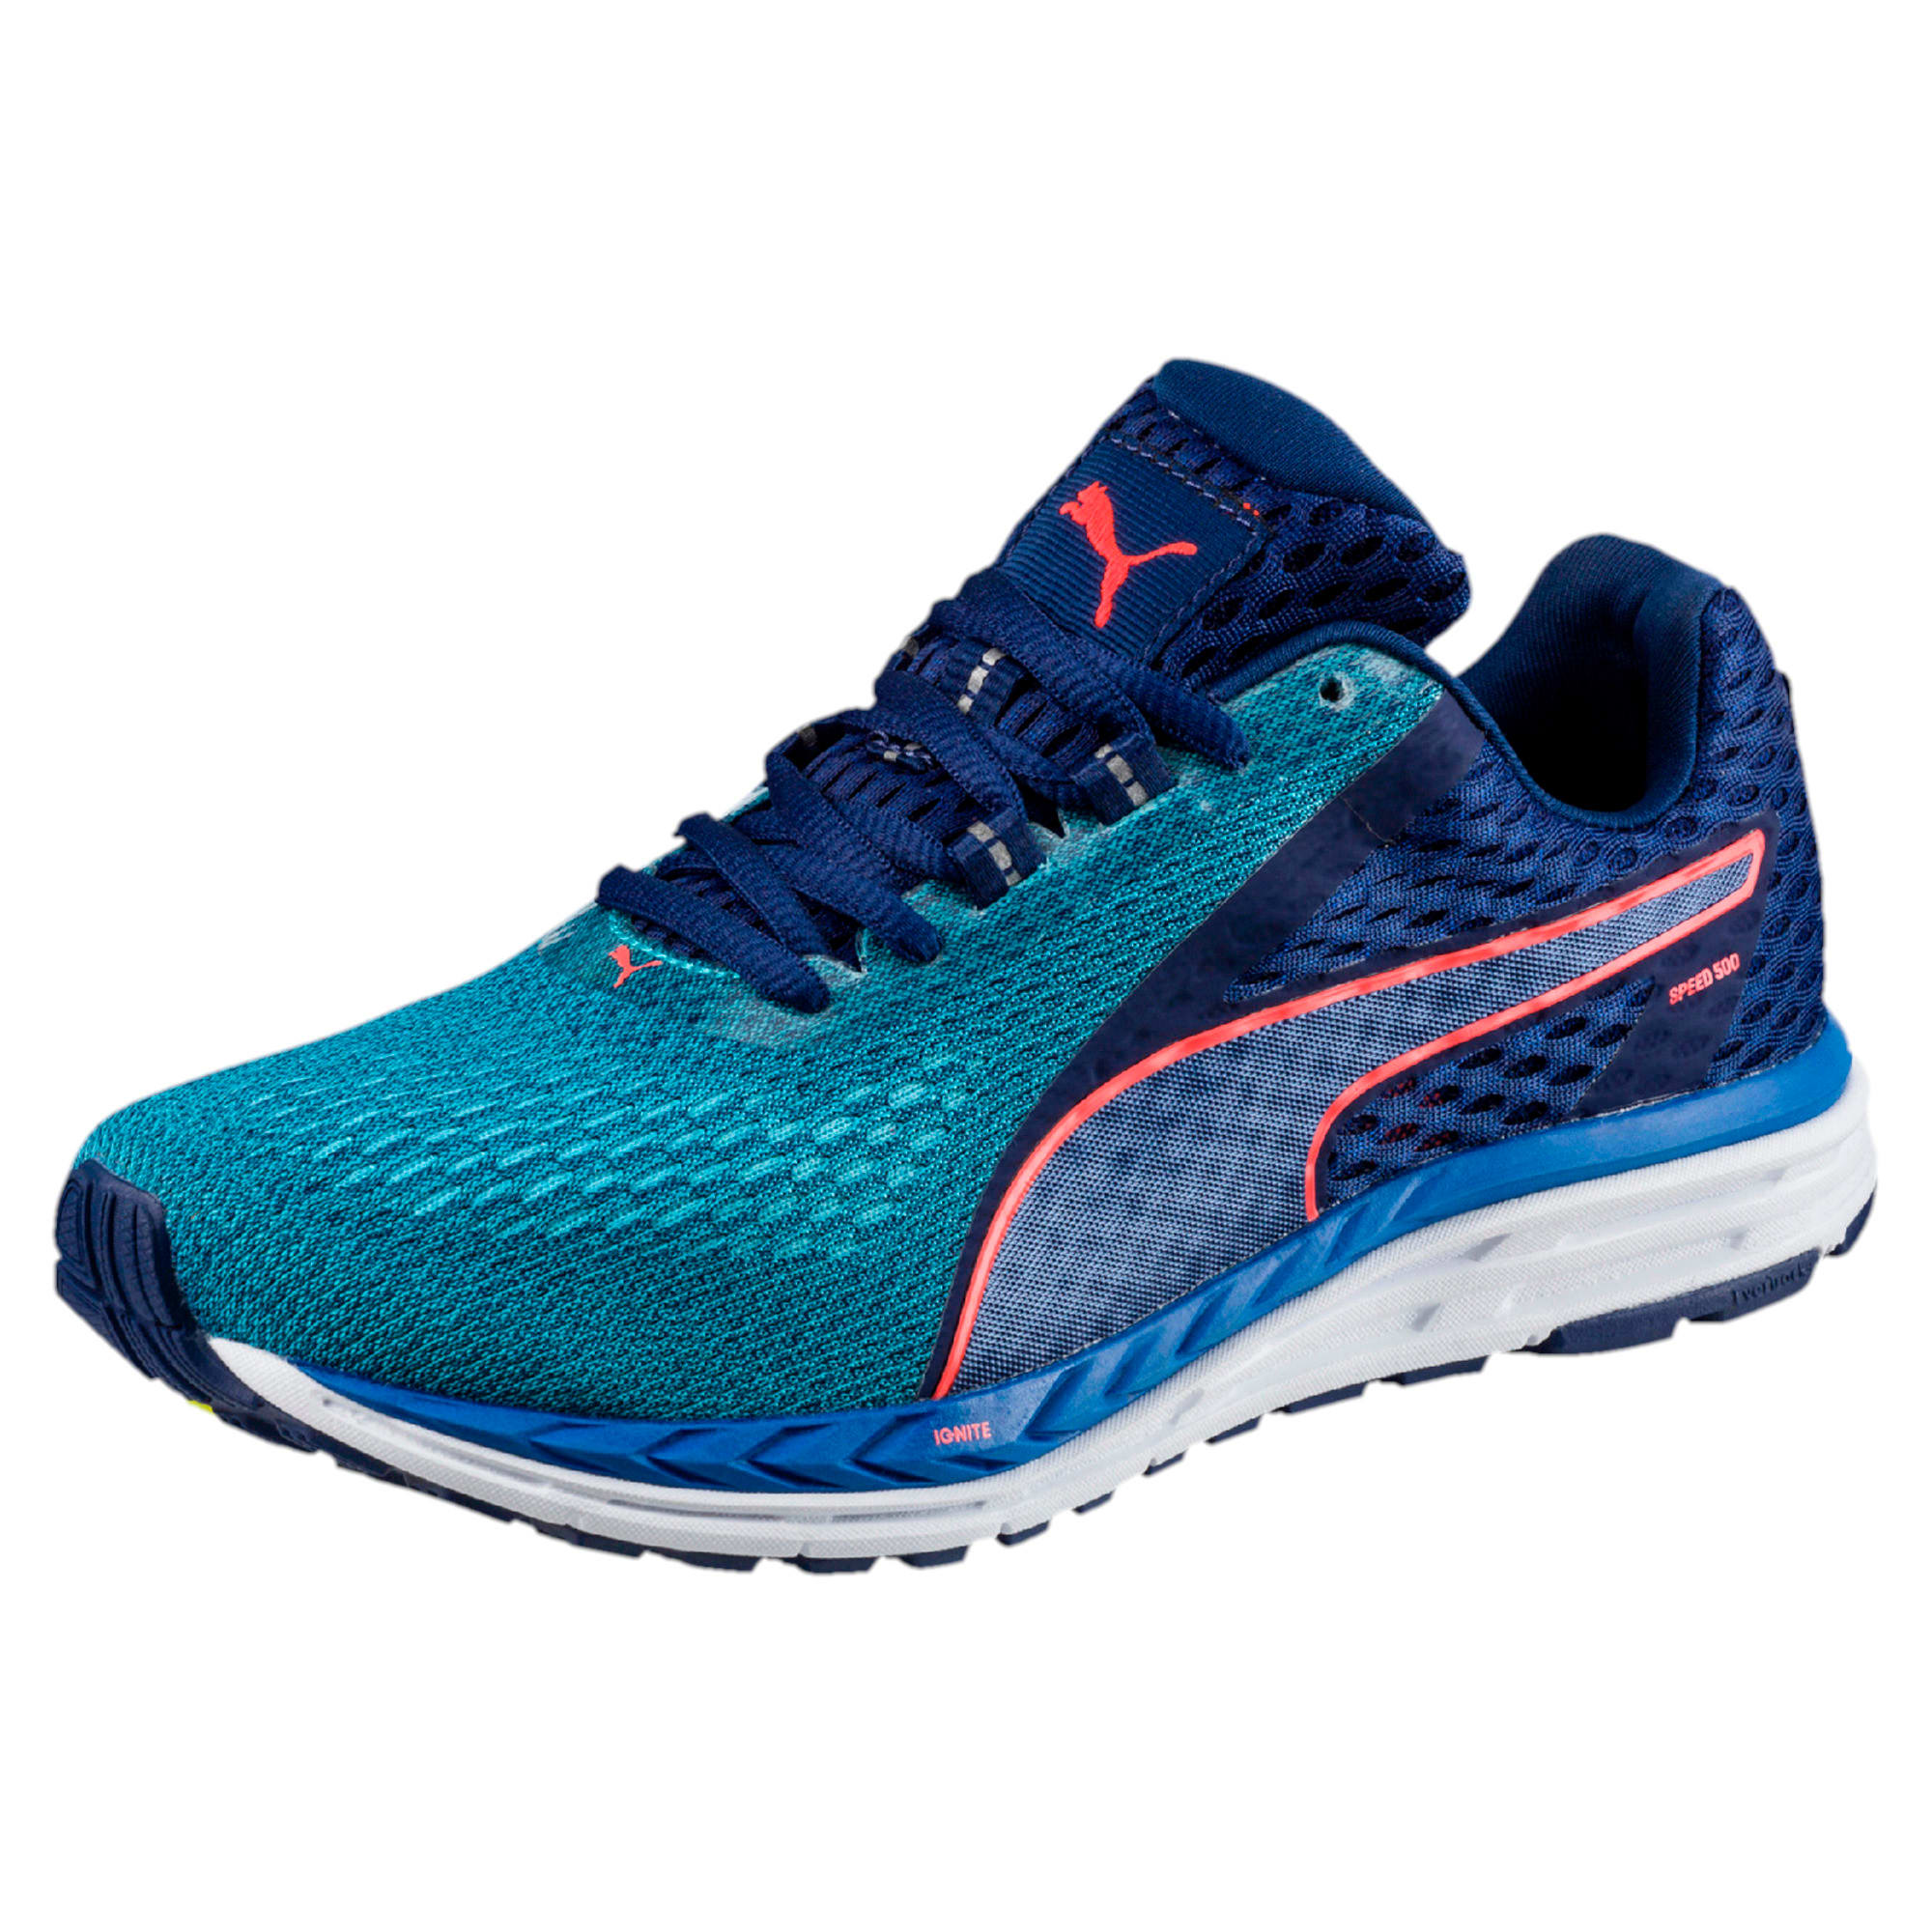 Thumbnail 1 of Speed 500 IGNITE 2 Kids' Running Shoes, Nrgy Turquoise-Blue Depths, medium-IND